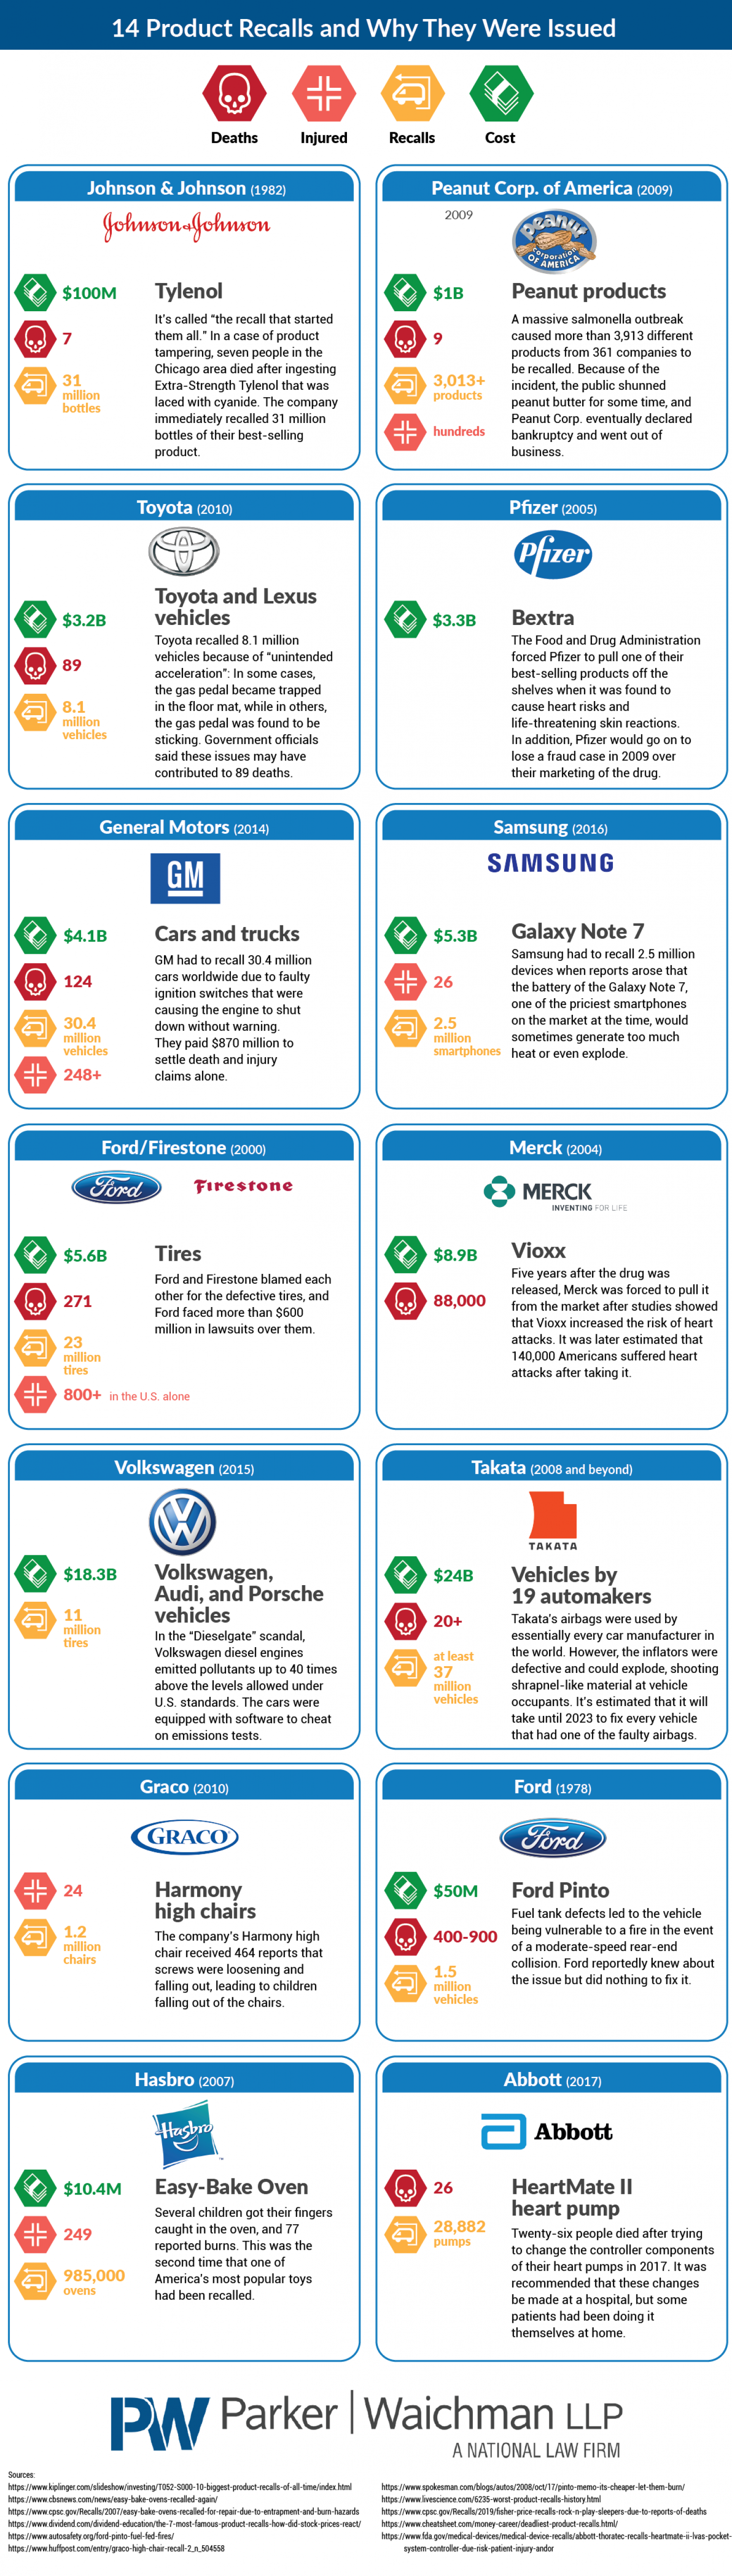 14 Product Recalls and Why They Were Issued Infographic